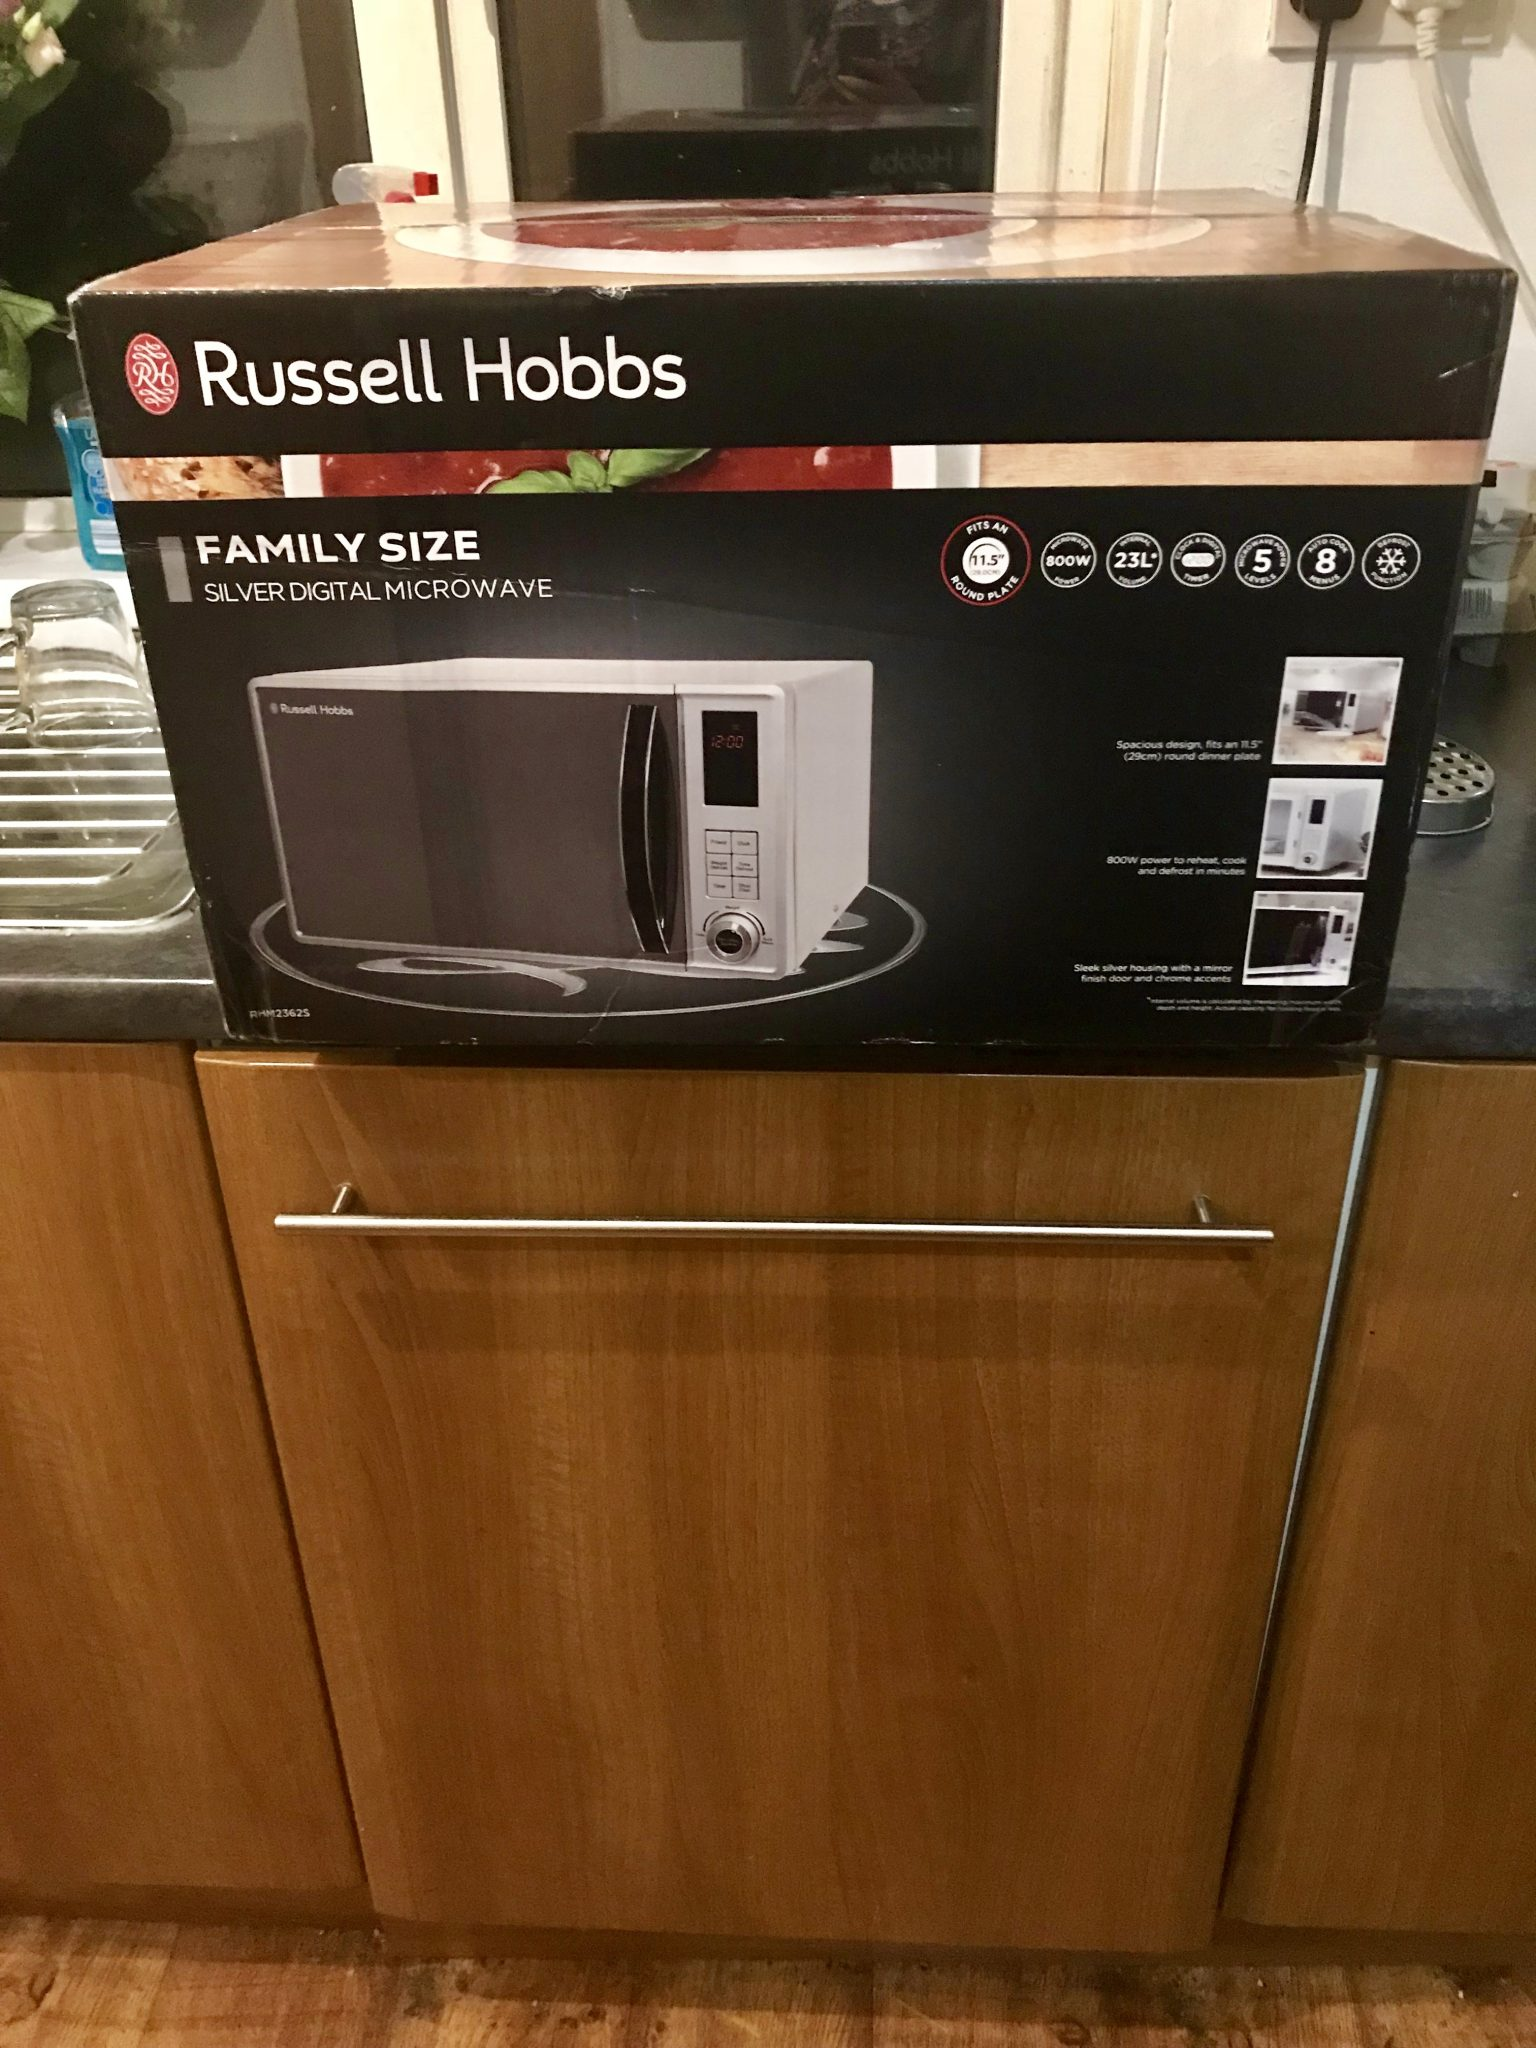 I feel like chicken tonight with the Russell Hobbs RHM2362S 23 Litre Microwave